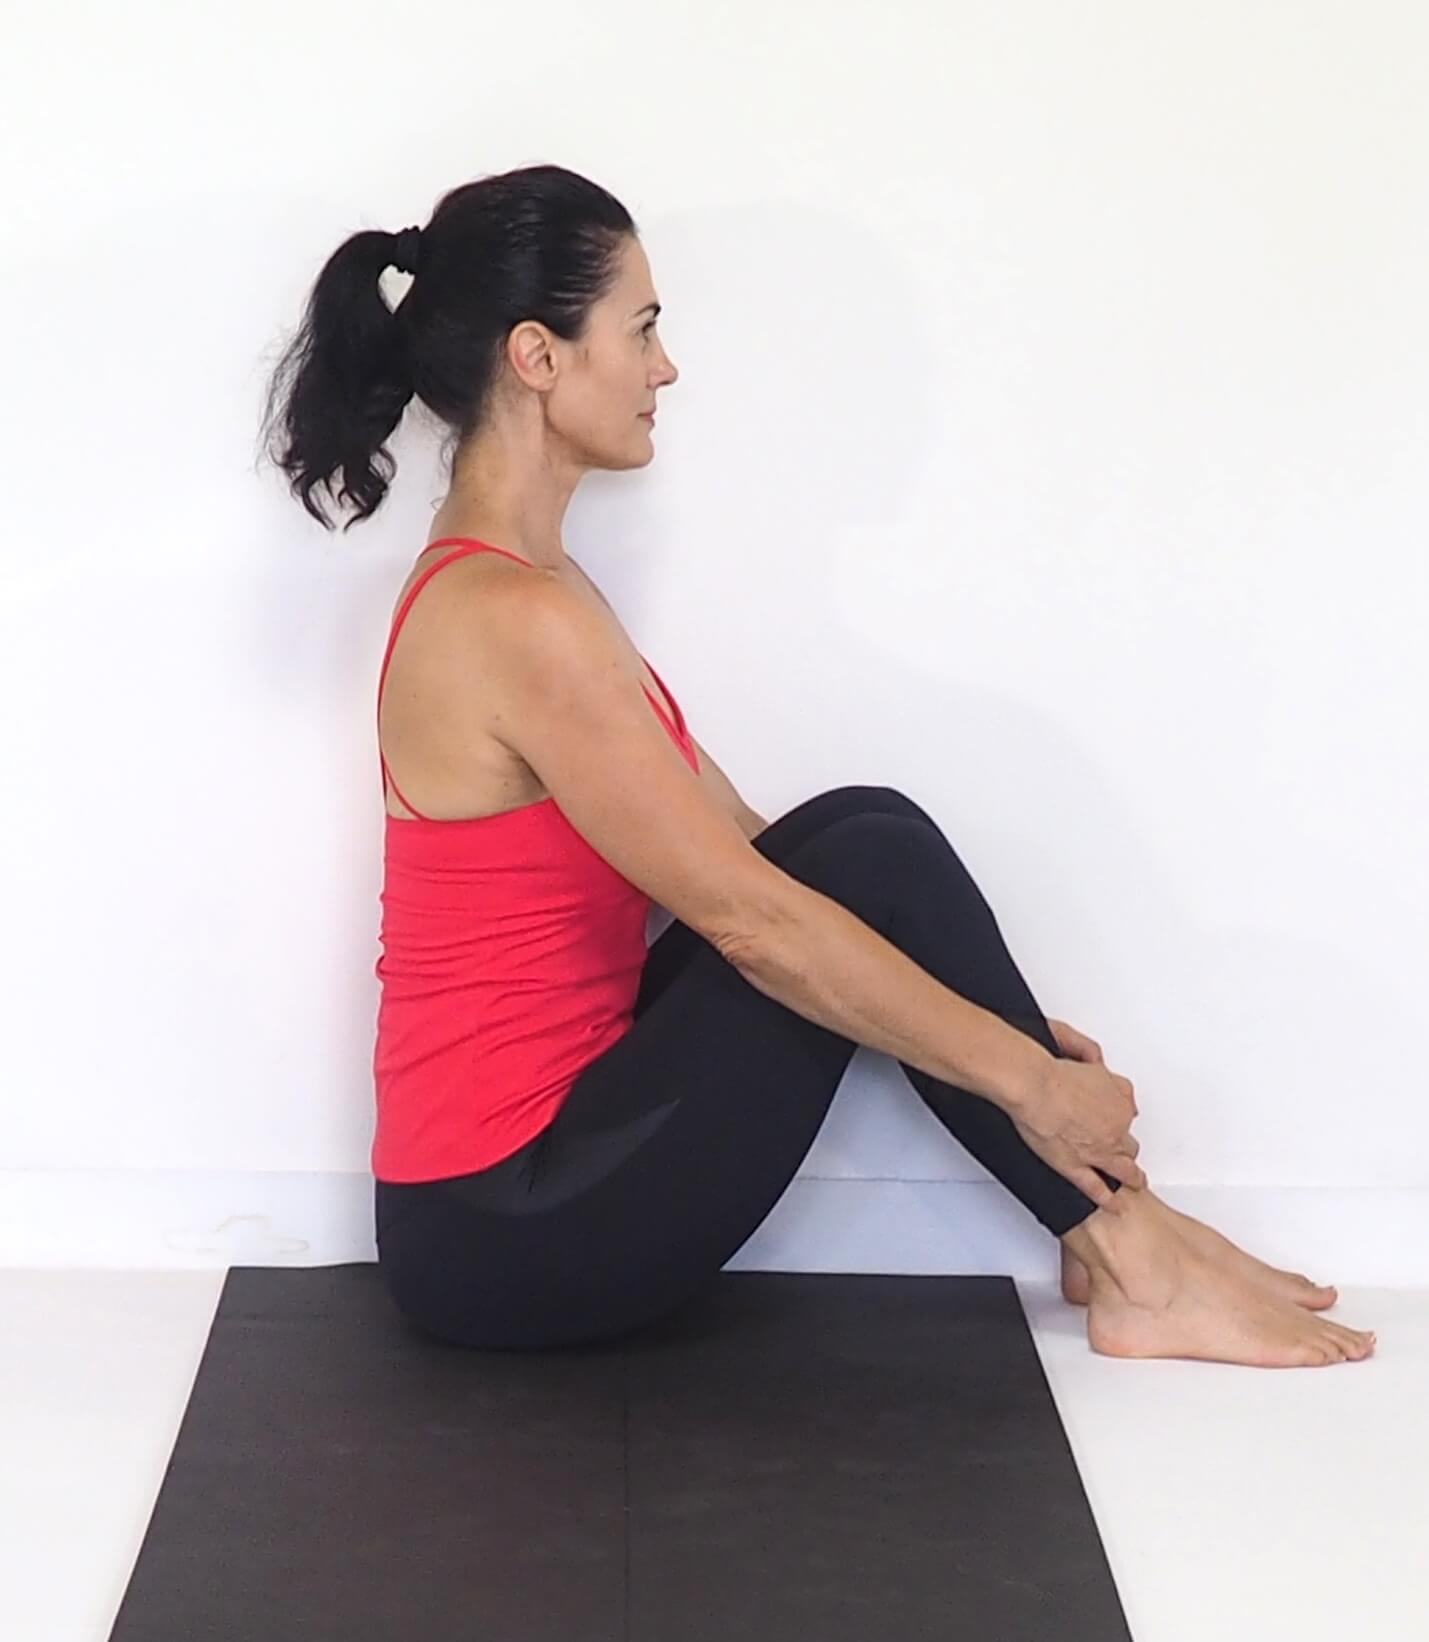 Achy legs and feet? Starting position